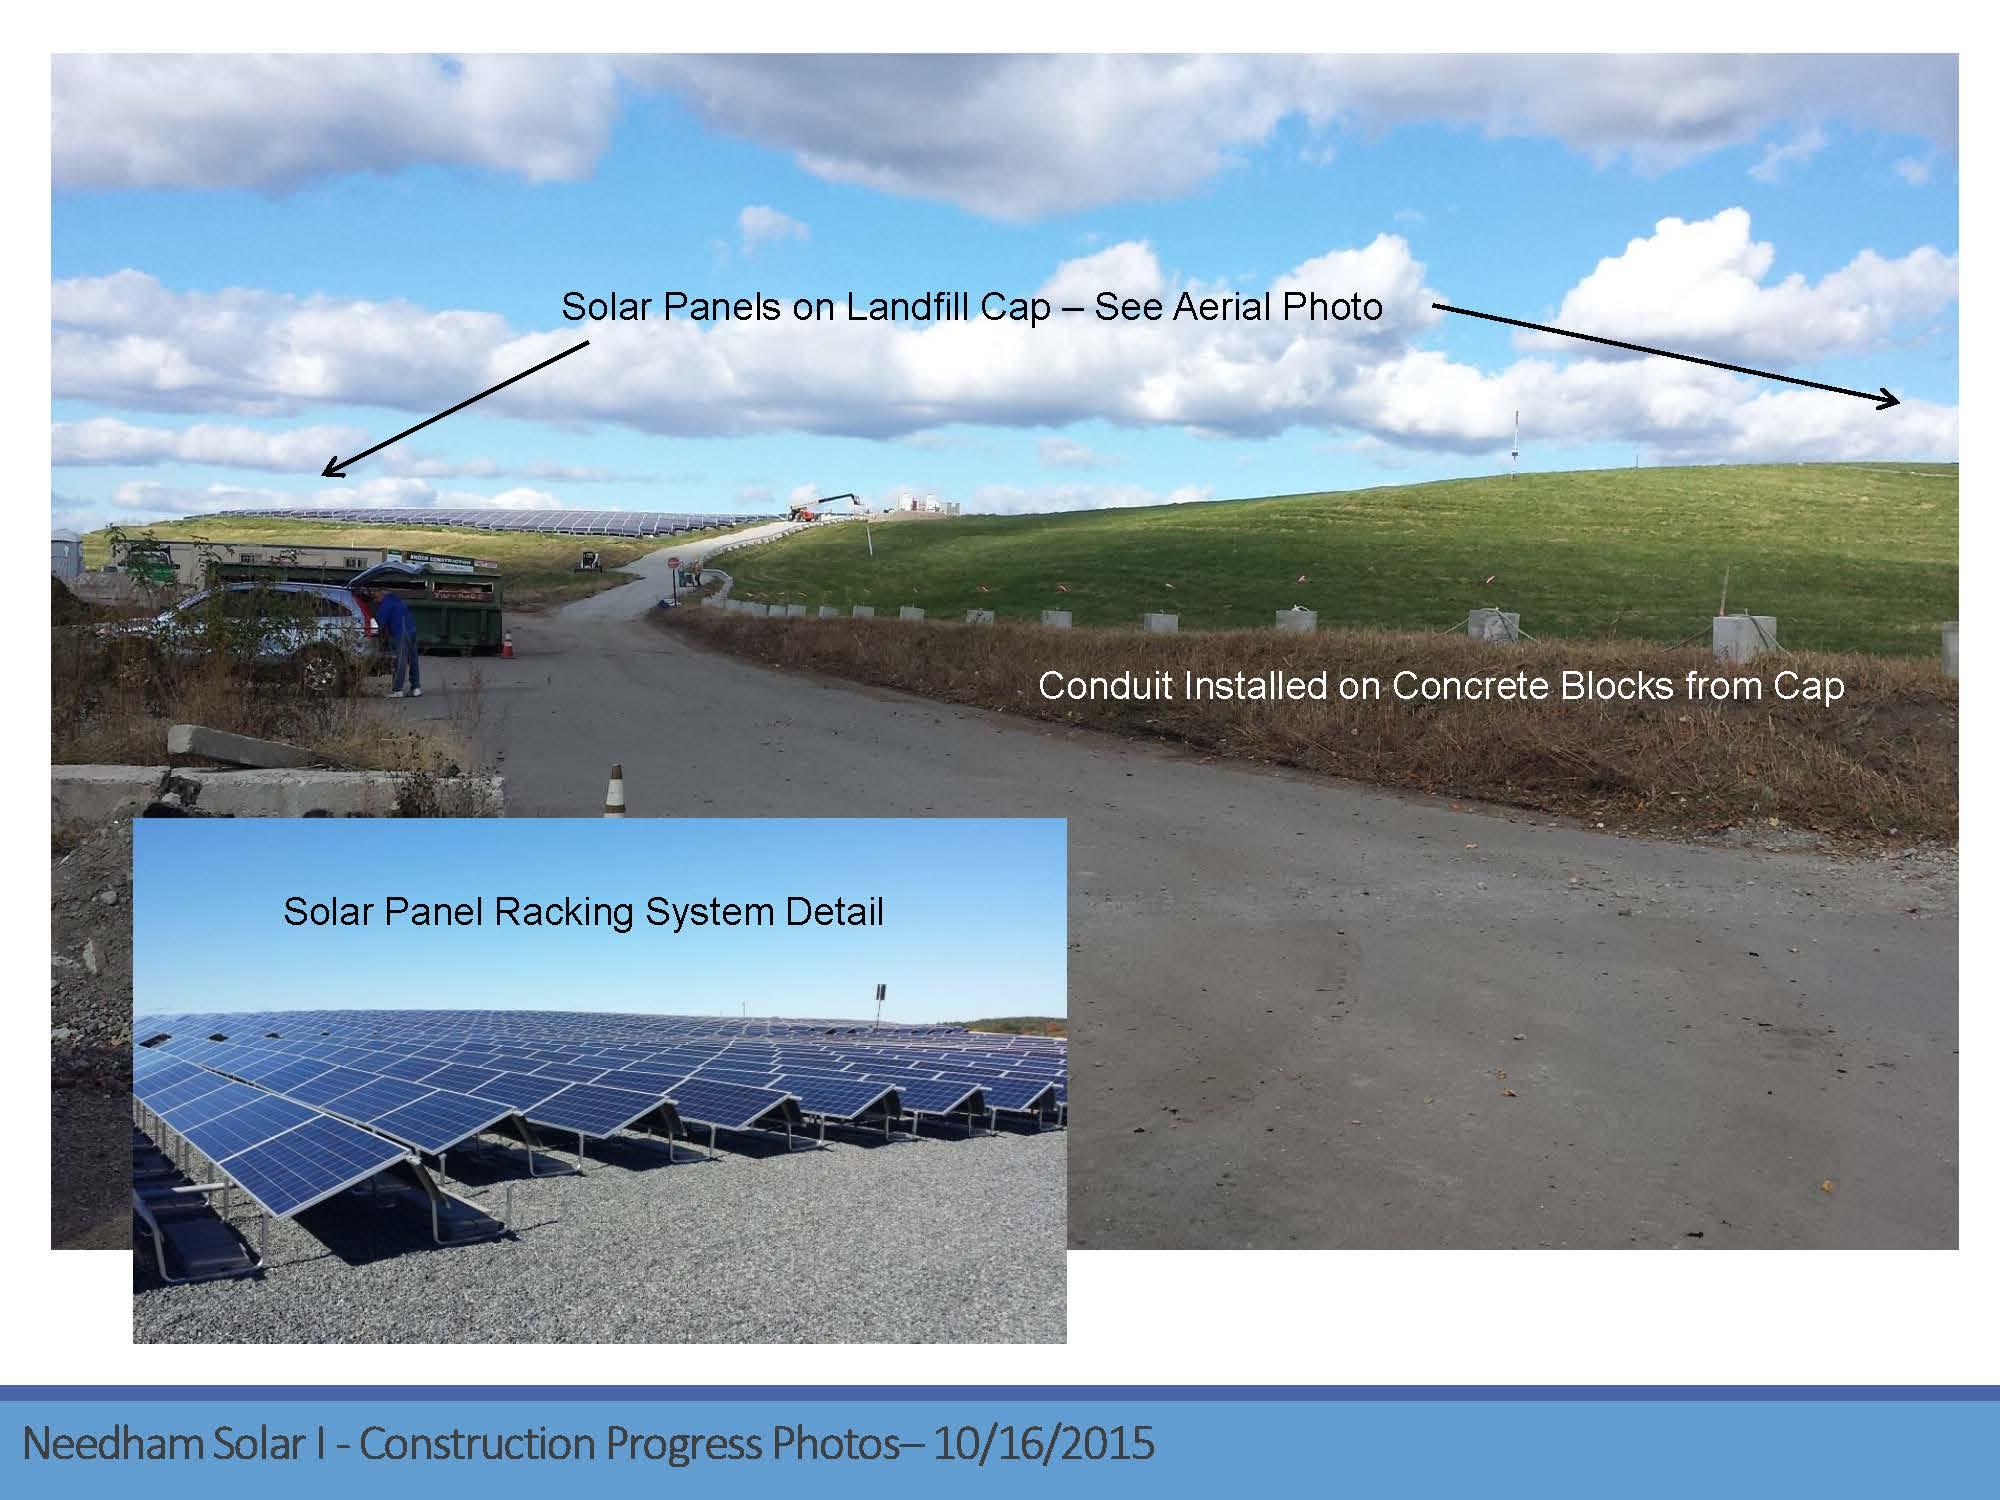 Page 10 of the Green Needham Presentation of the Solar 1 Landfill Project